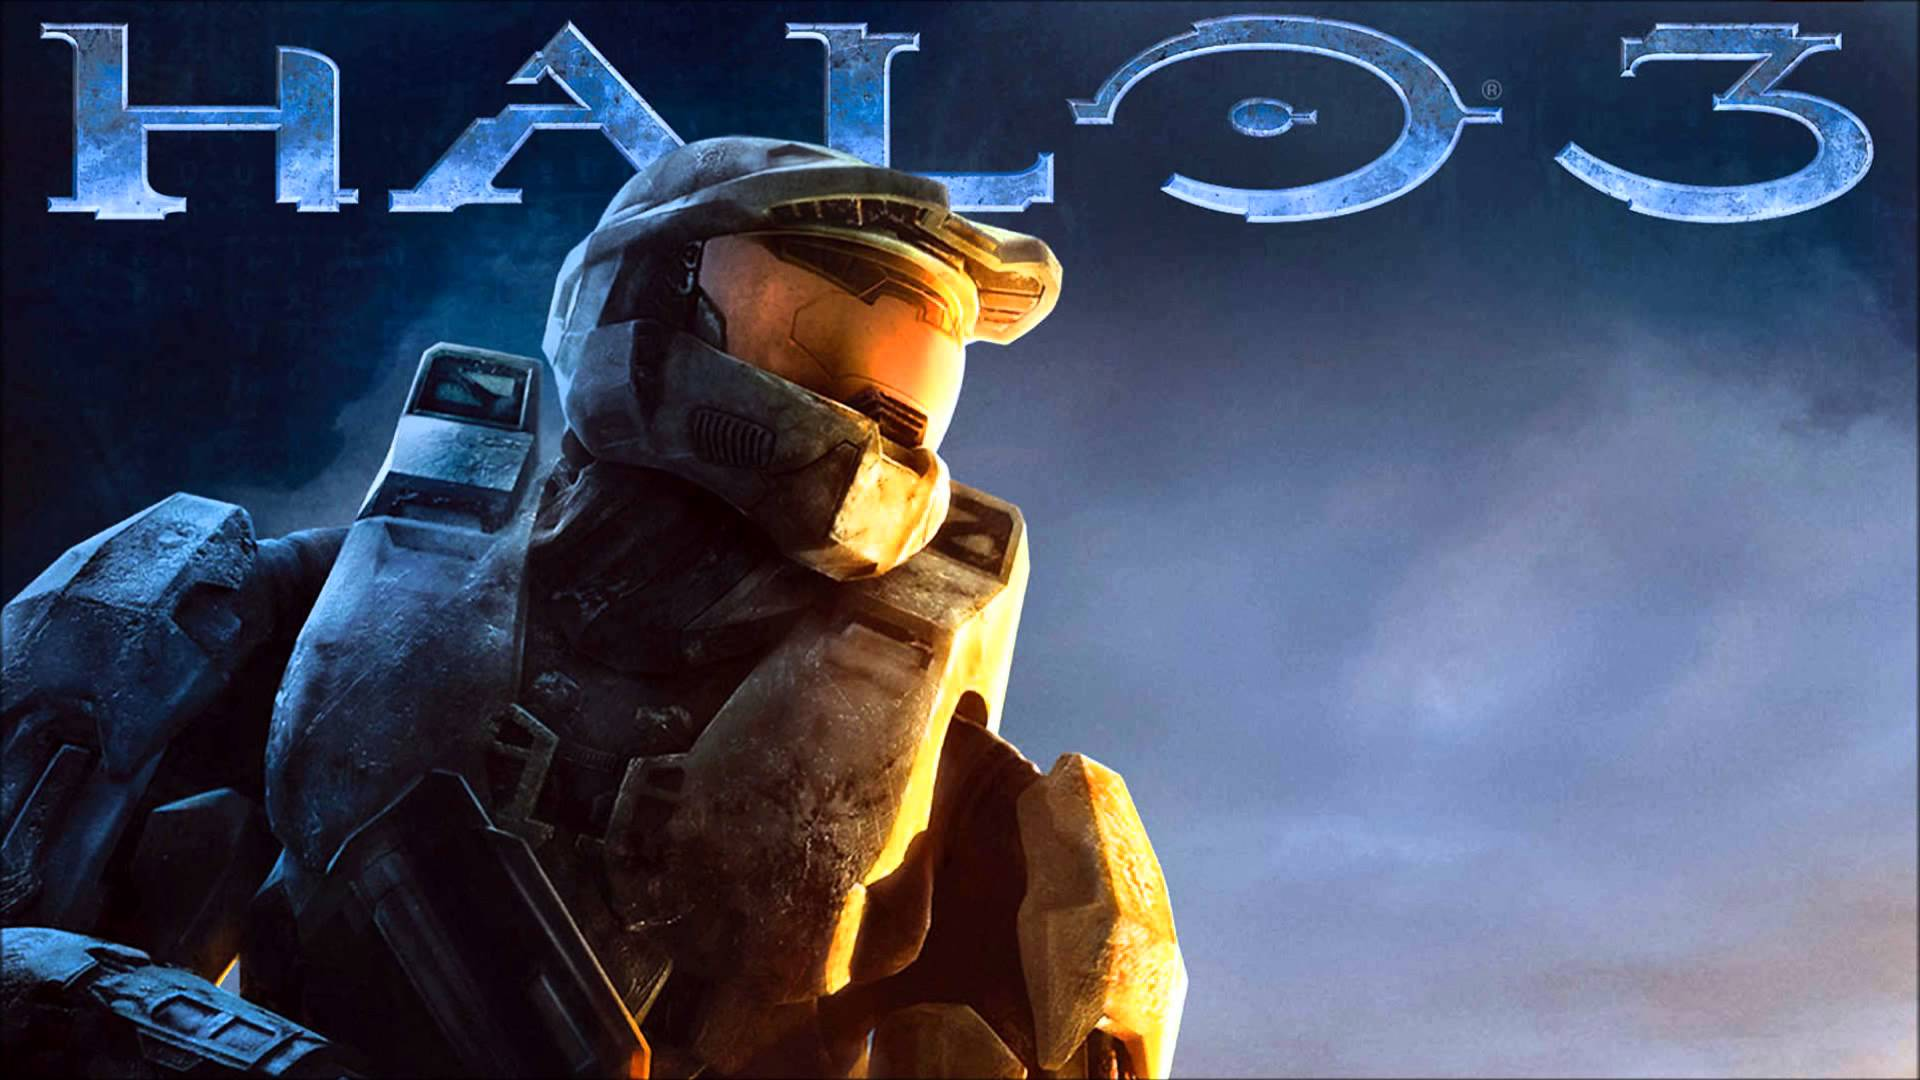 Did AMD Reveal Halo 3 For PC?